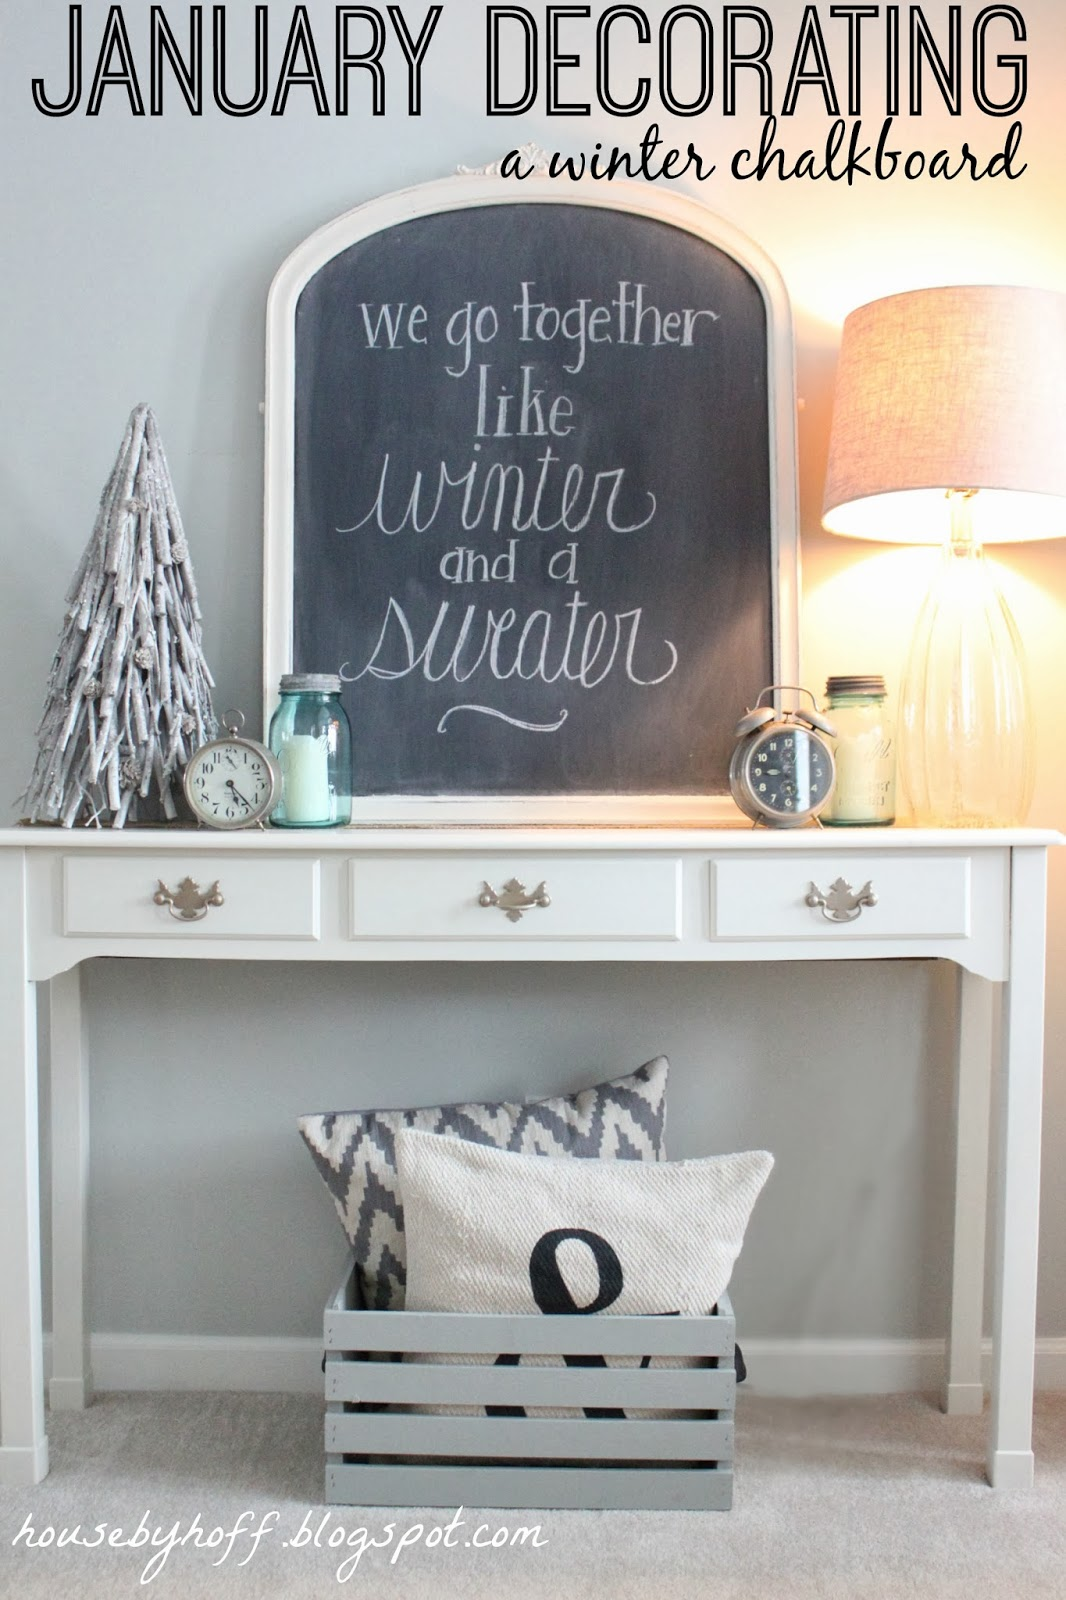 January Decorating A Winter Chalkboard + Showcasing Your Collections! - House By Hoff